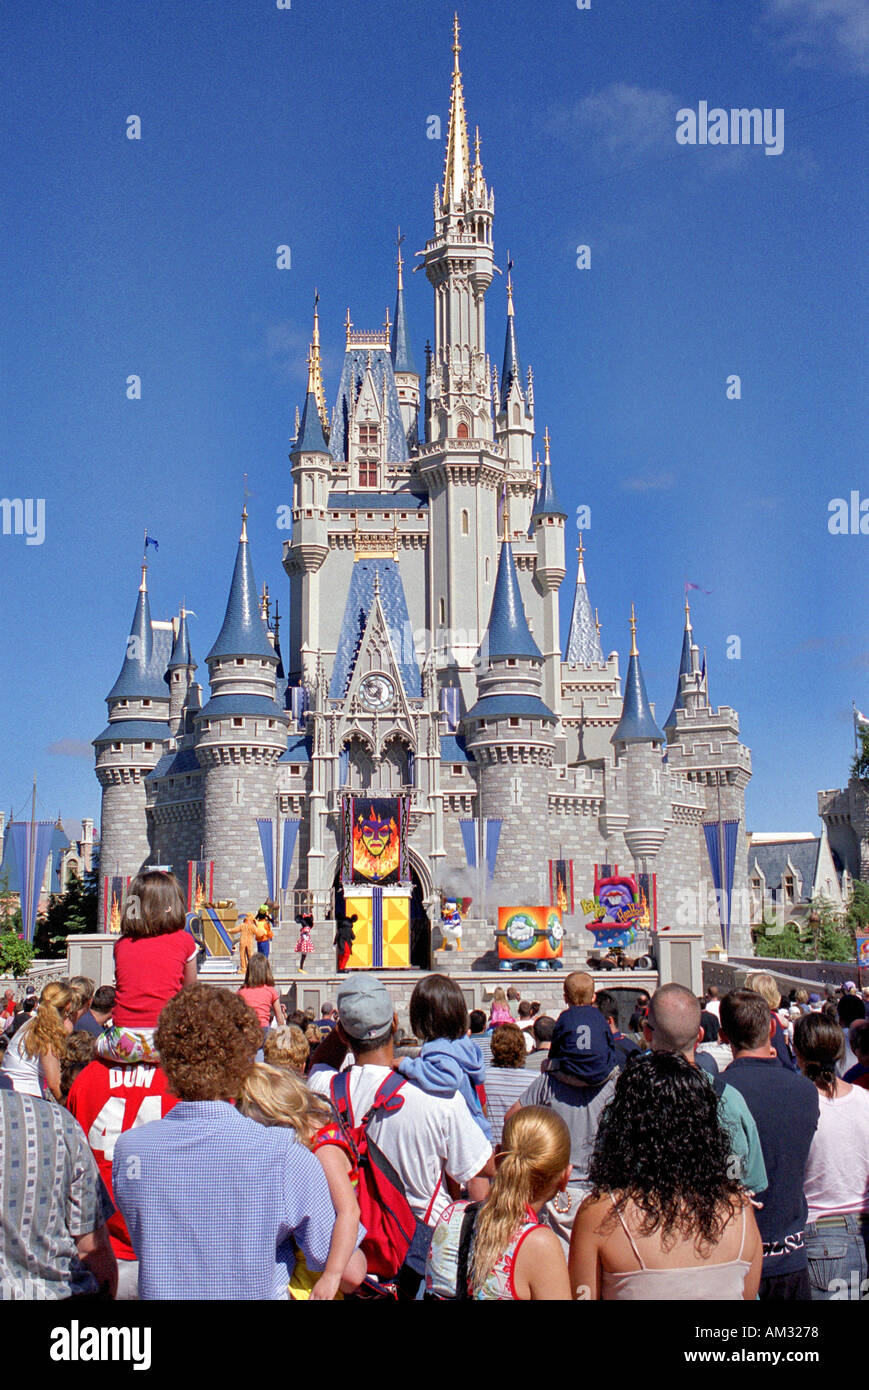 Disney Castle Magic Kingdom Disneyland Orlando Florida USA Stock Photo